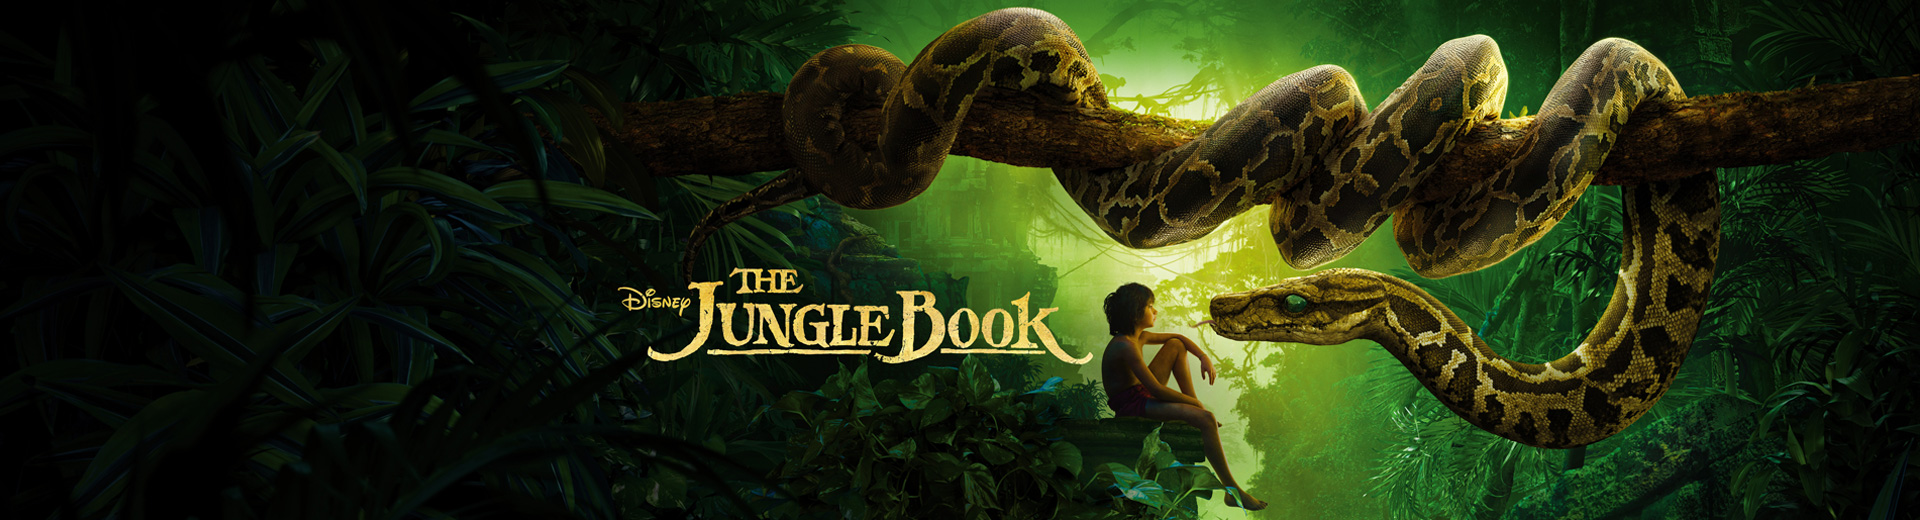 The Jungle Book (2016) – available now on Virgin Movies